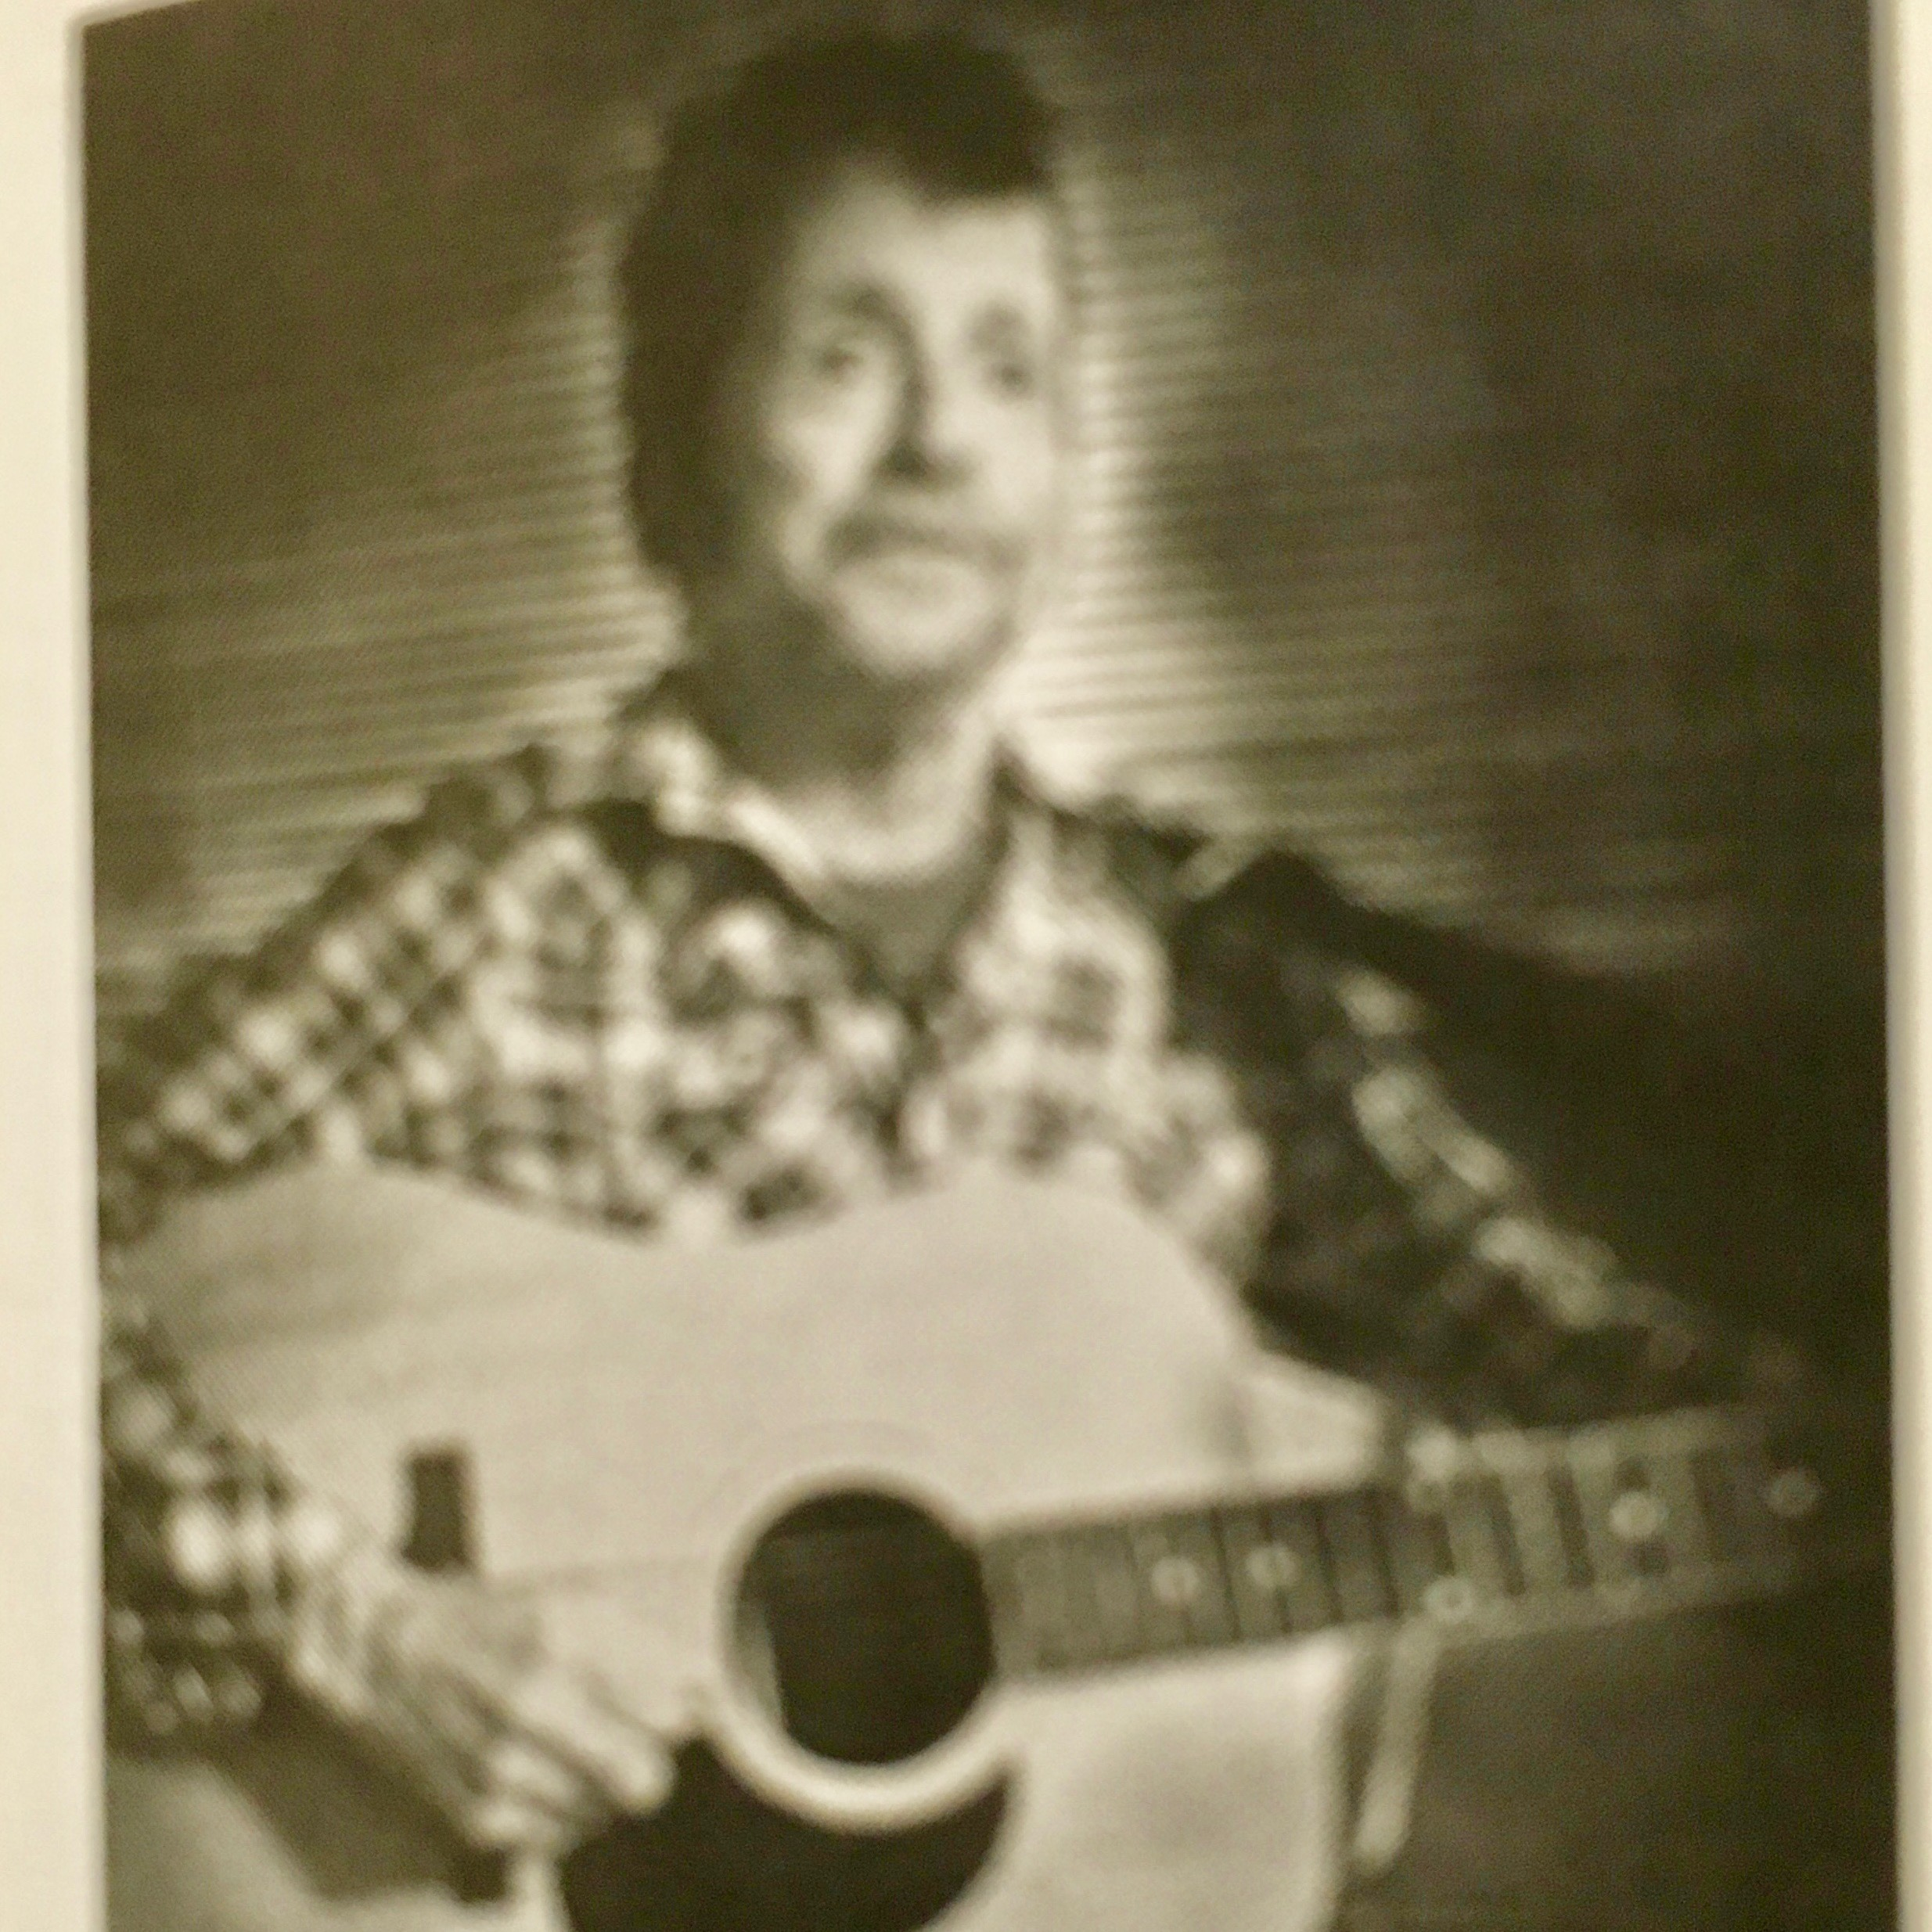 Bill Goodman, Musician & Songwriter